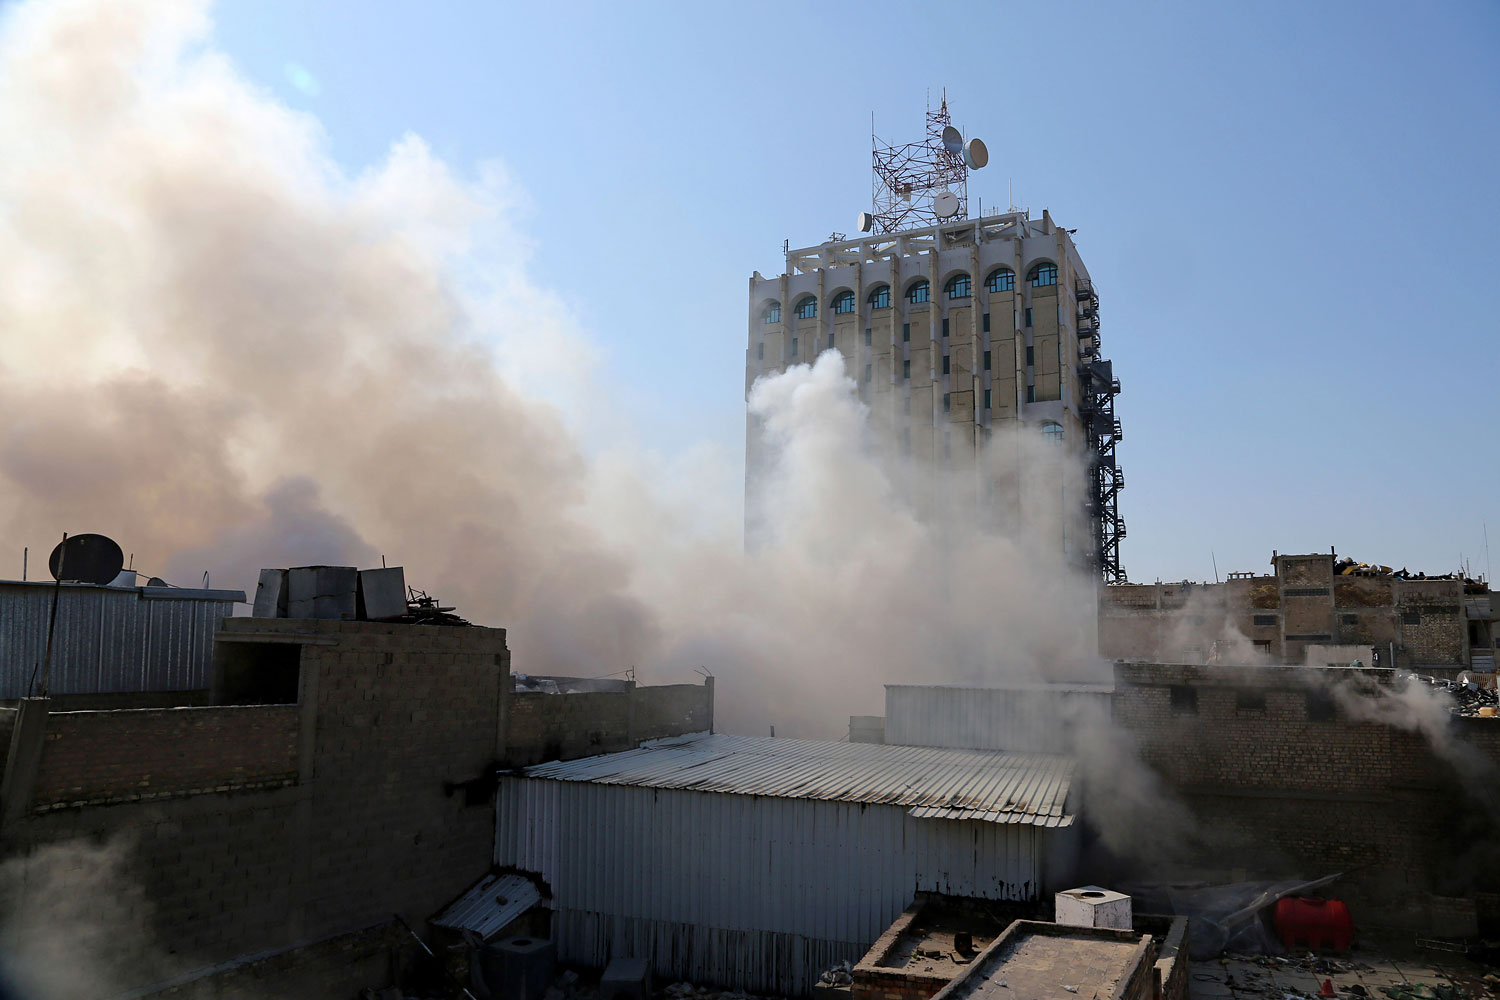 Smoke rises after a parked car bomb went off at a commercial center in Khilani Square in central Baghdad, Feb. 5, 2014.